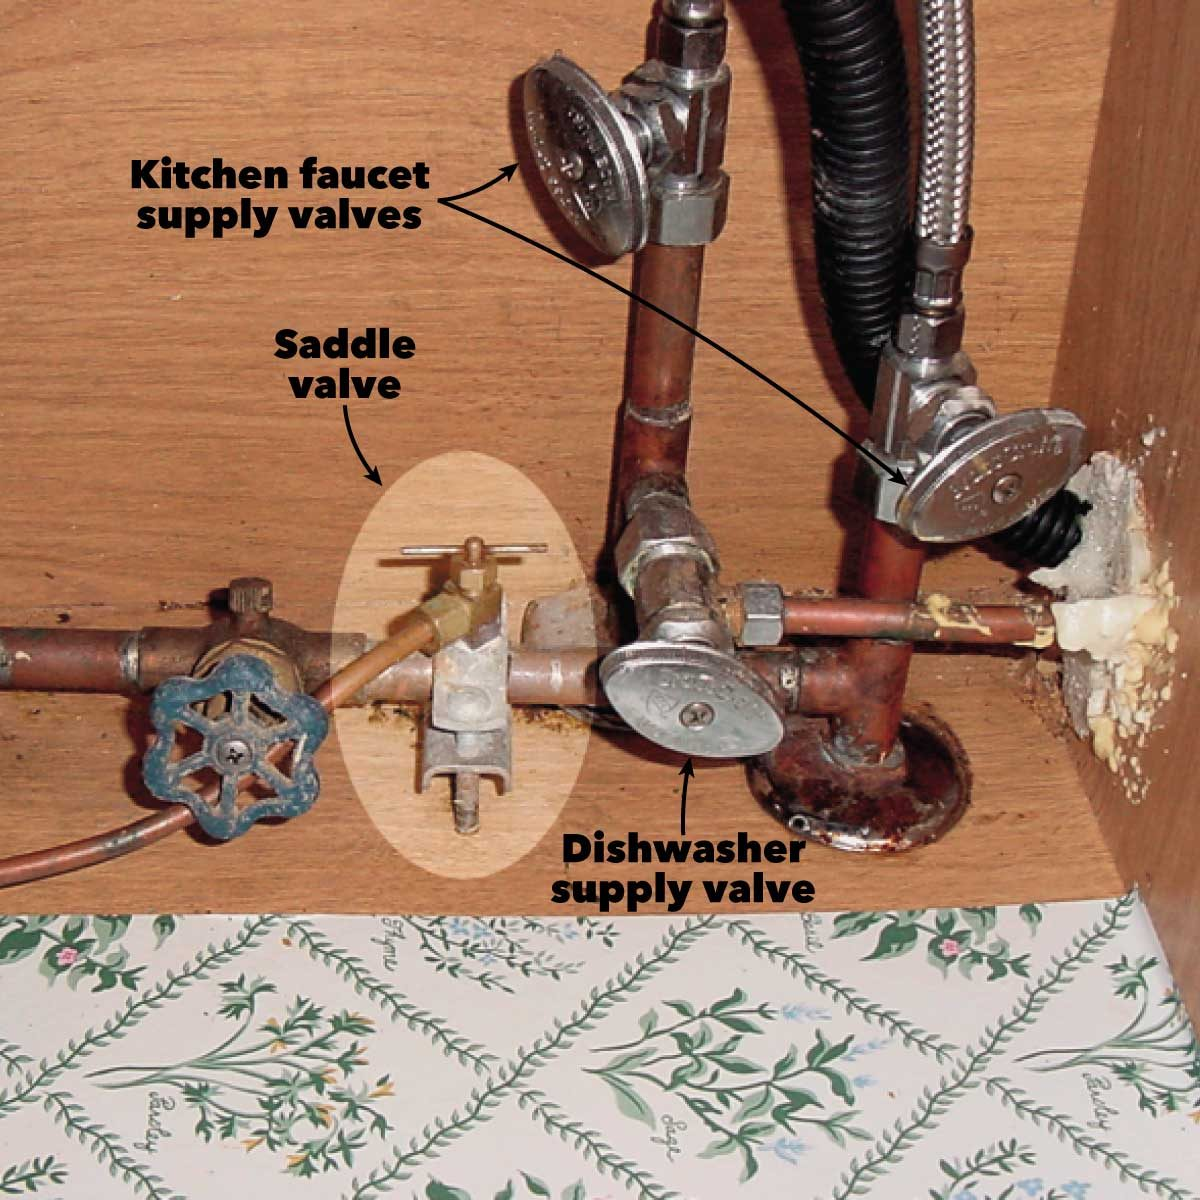 supply valves